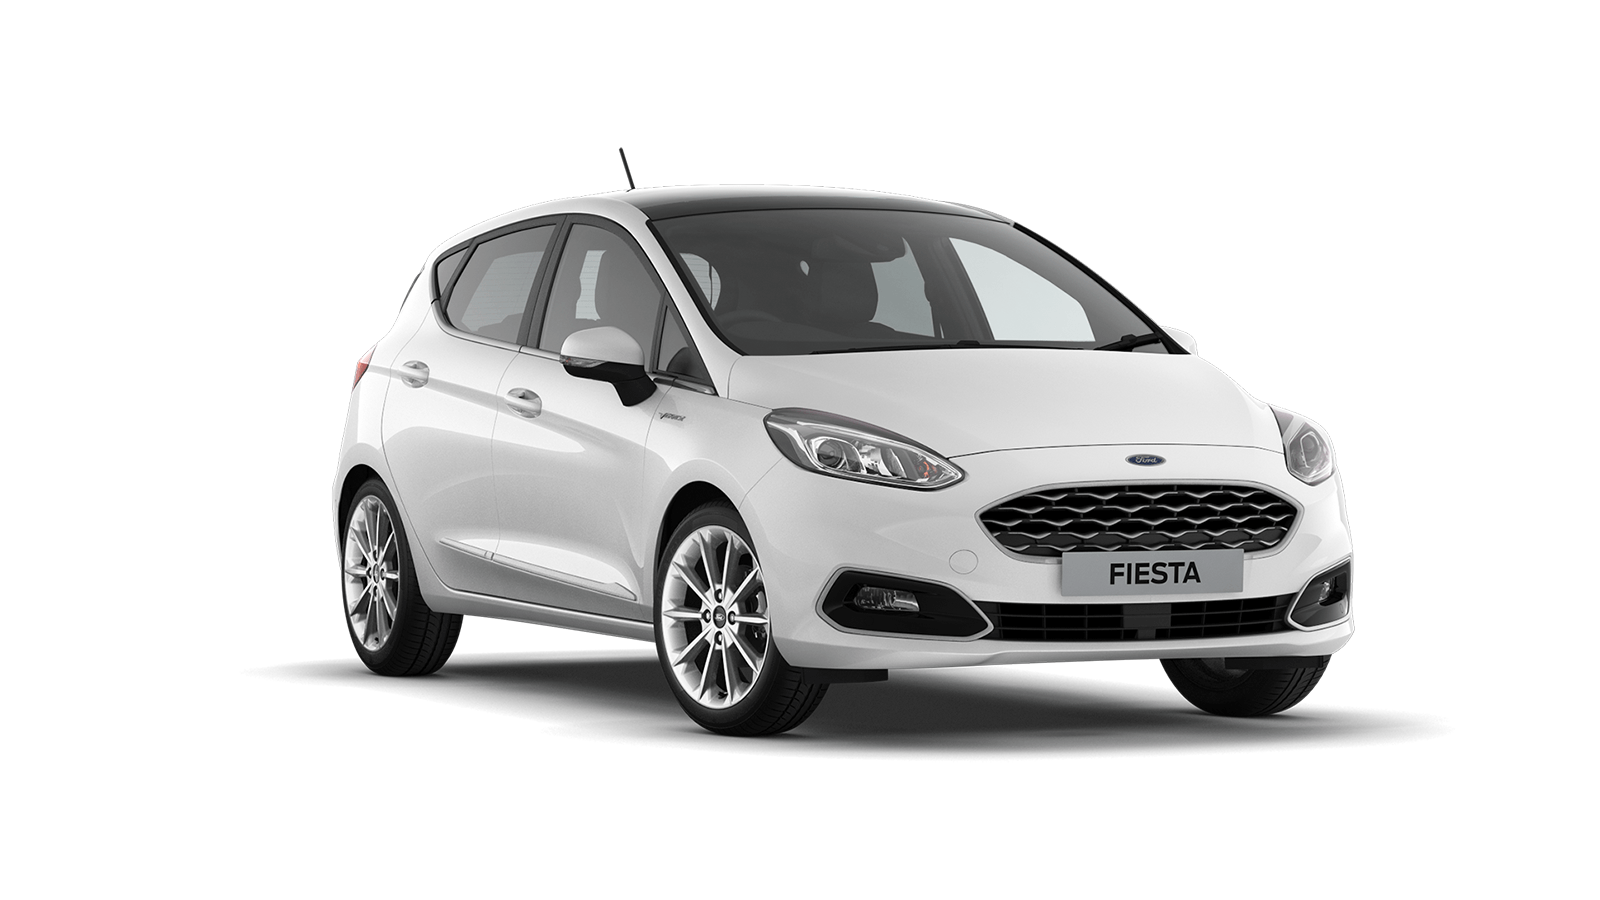 https://www.dealerinternet.co.uk/images/FIESTA%20B299/2019/5%20Door/Vignale/FROZEN-WHITE.png